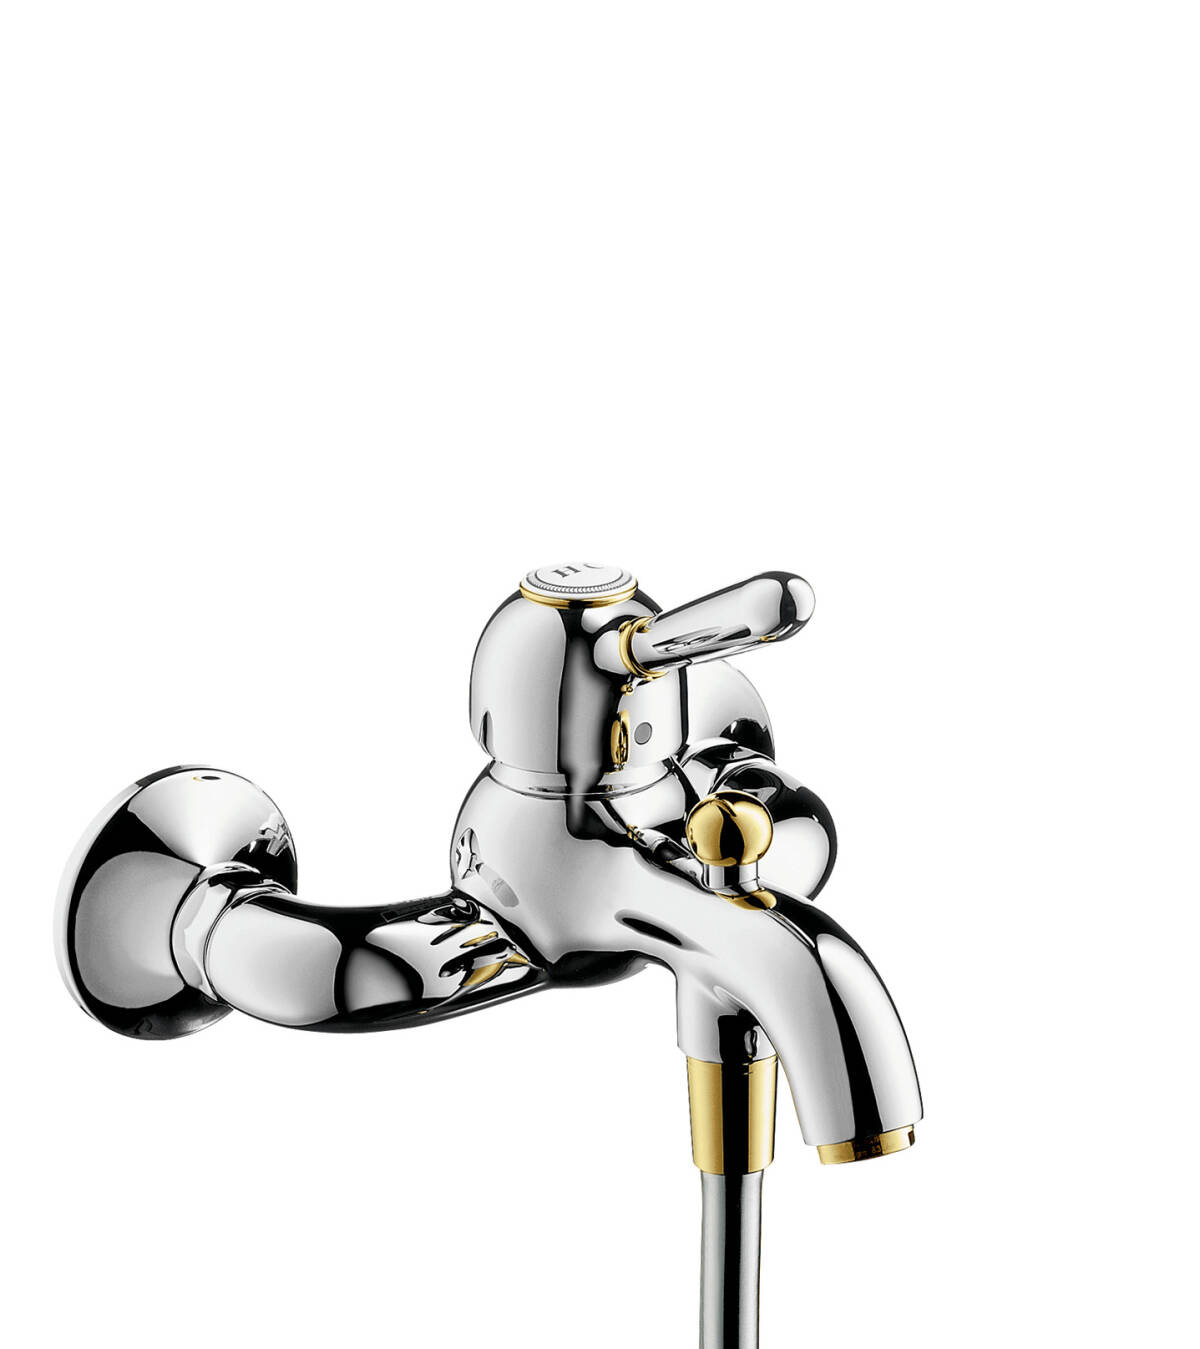 Single lever bath mixer for exposed installation, Brushed Gold Optic, 17410250